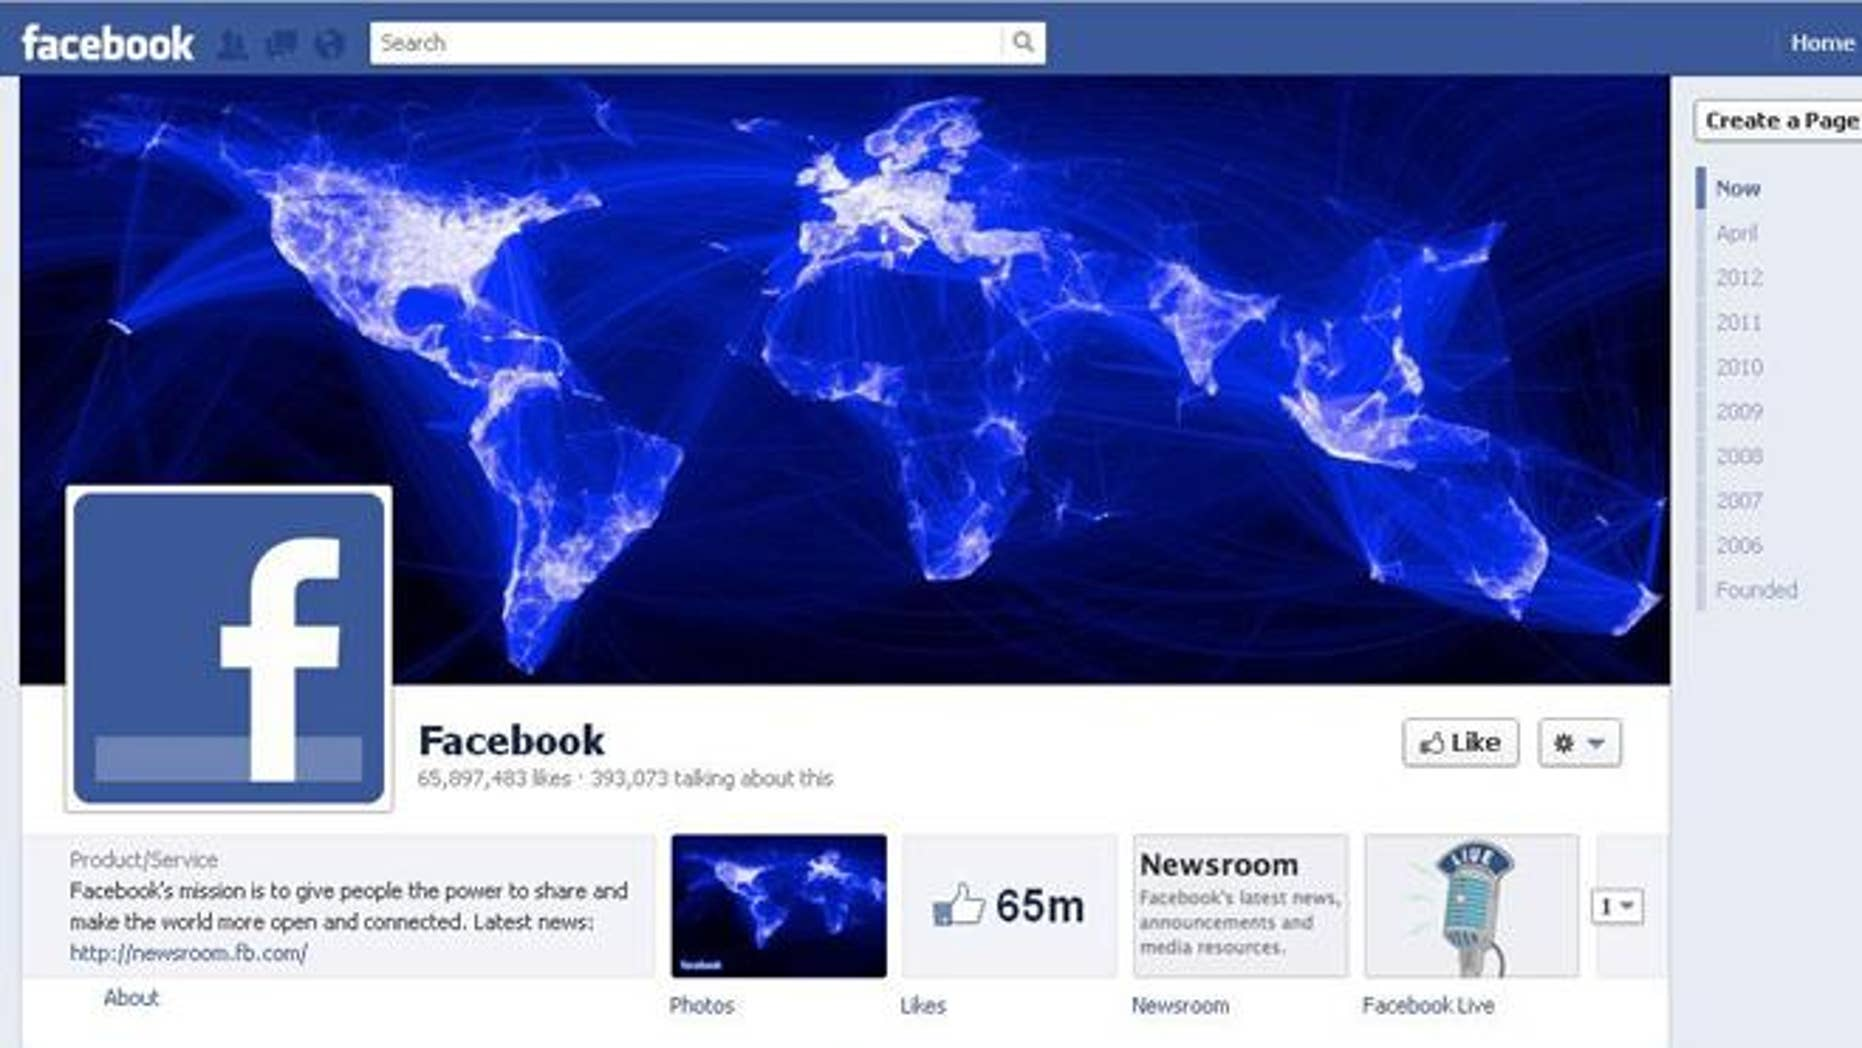 The Facebook page for Facebook, the world's largest social network.